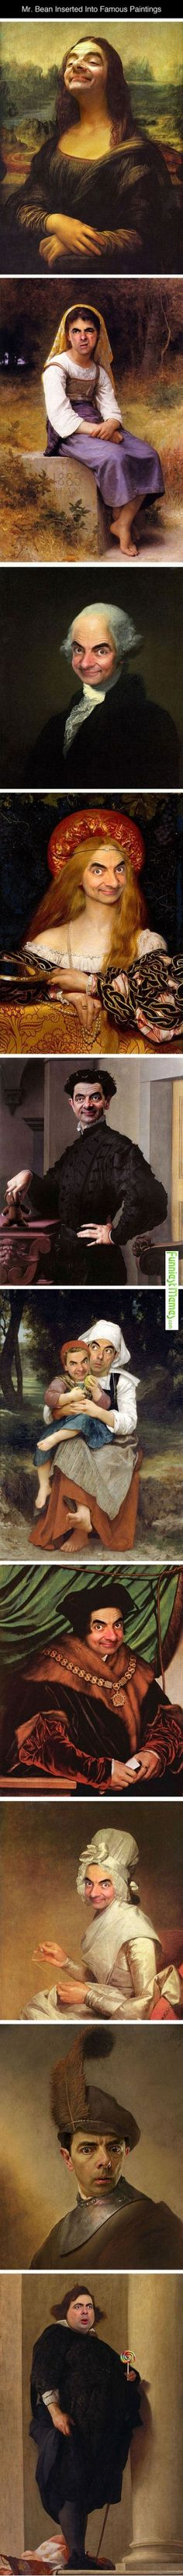 Funniest Memes - Mr. Bean! #hahaha Pinned by: www.spinstersguide.com